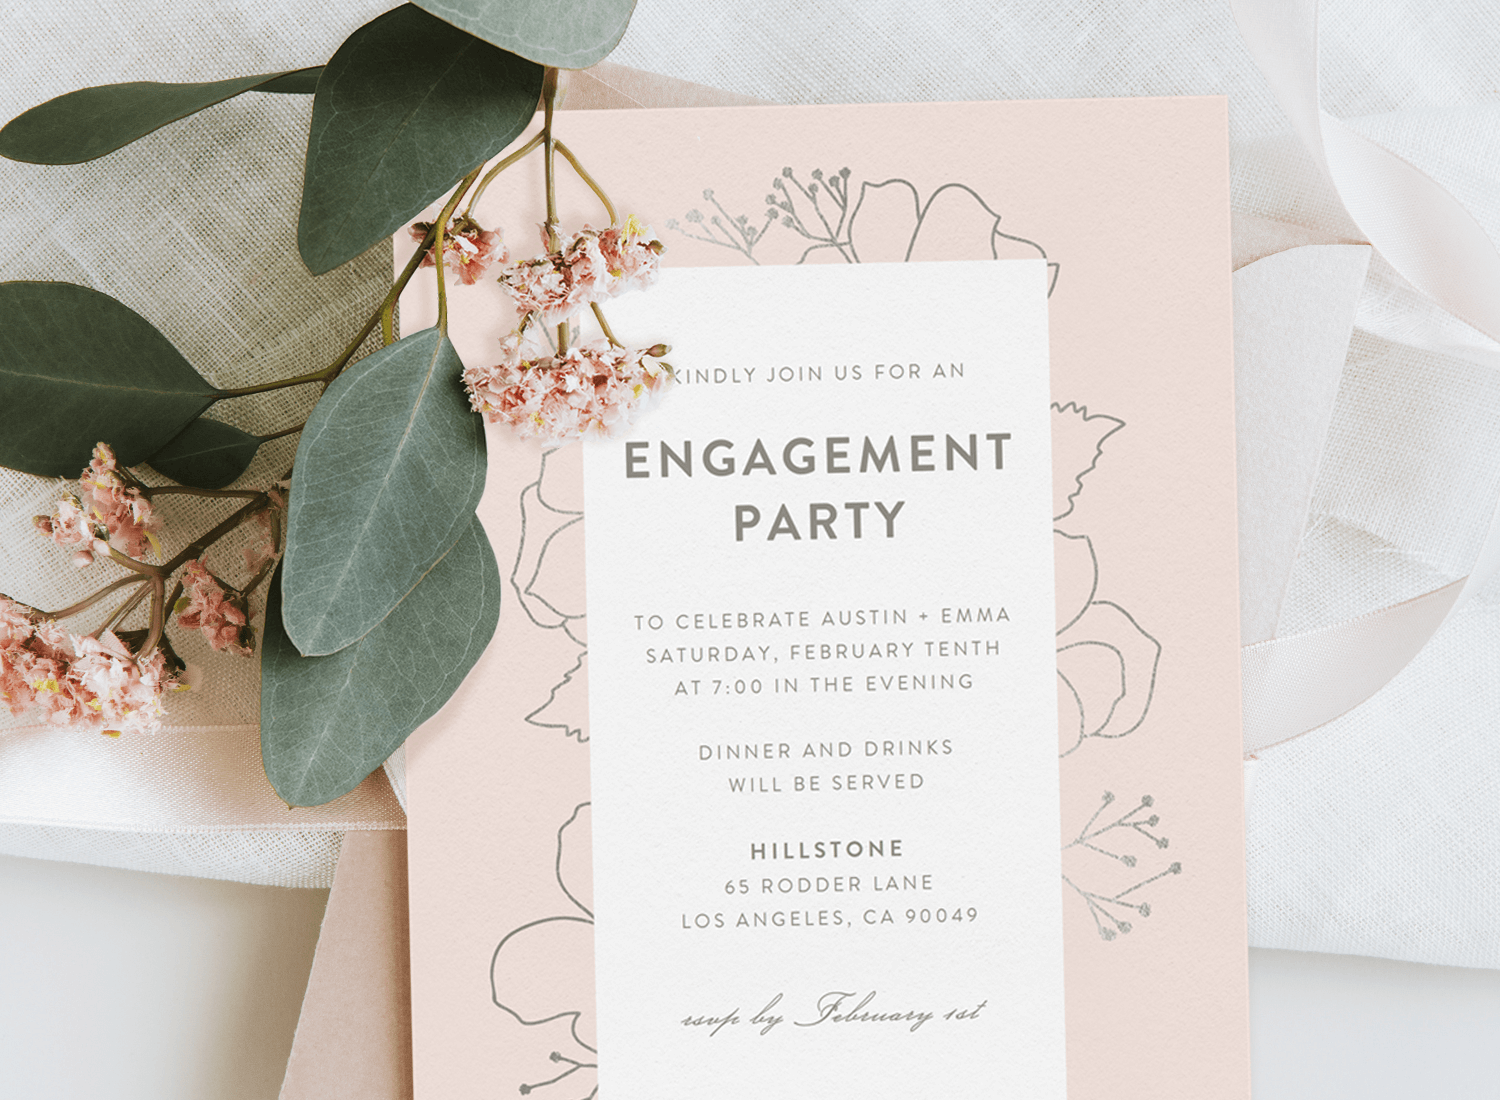 Engagement party ideas: simple engagement party invitation with a flower